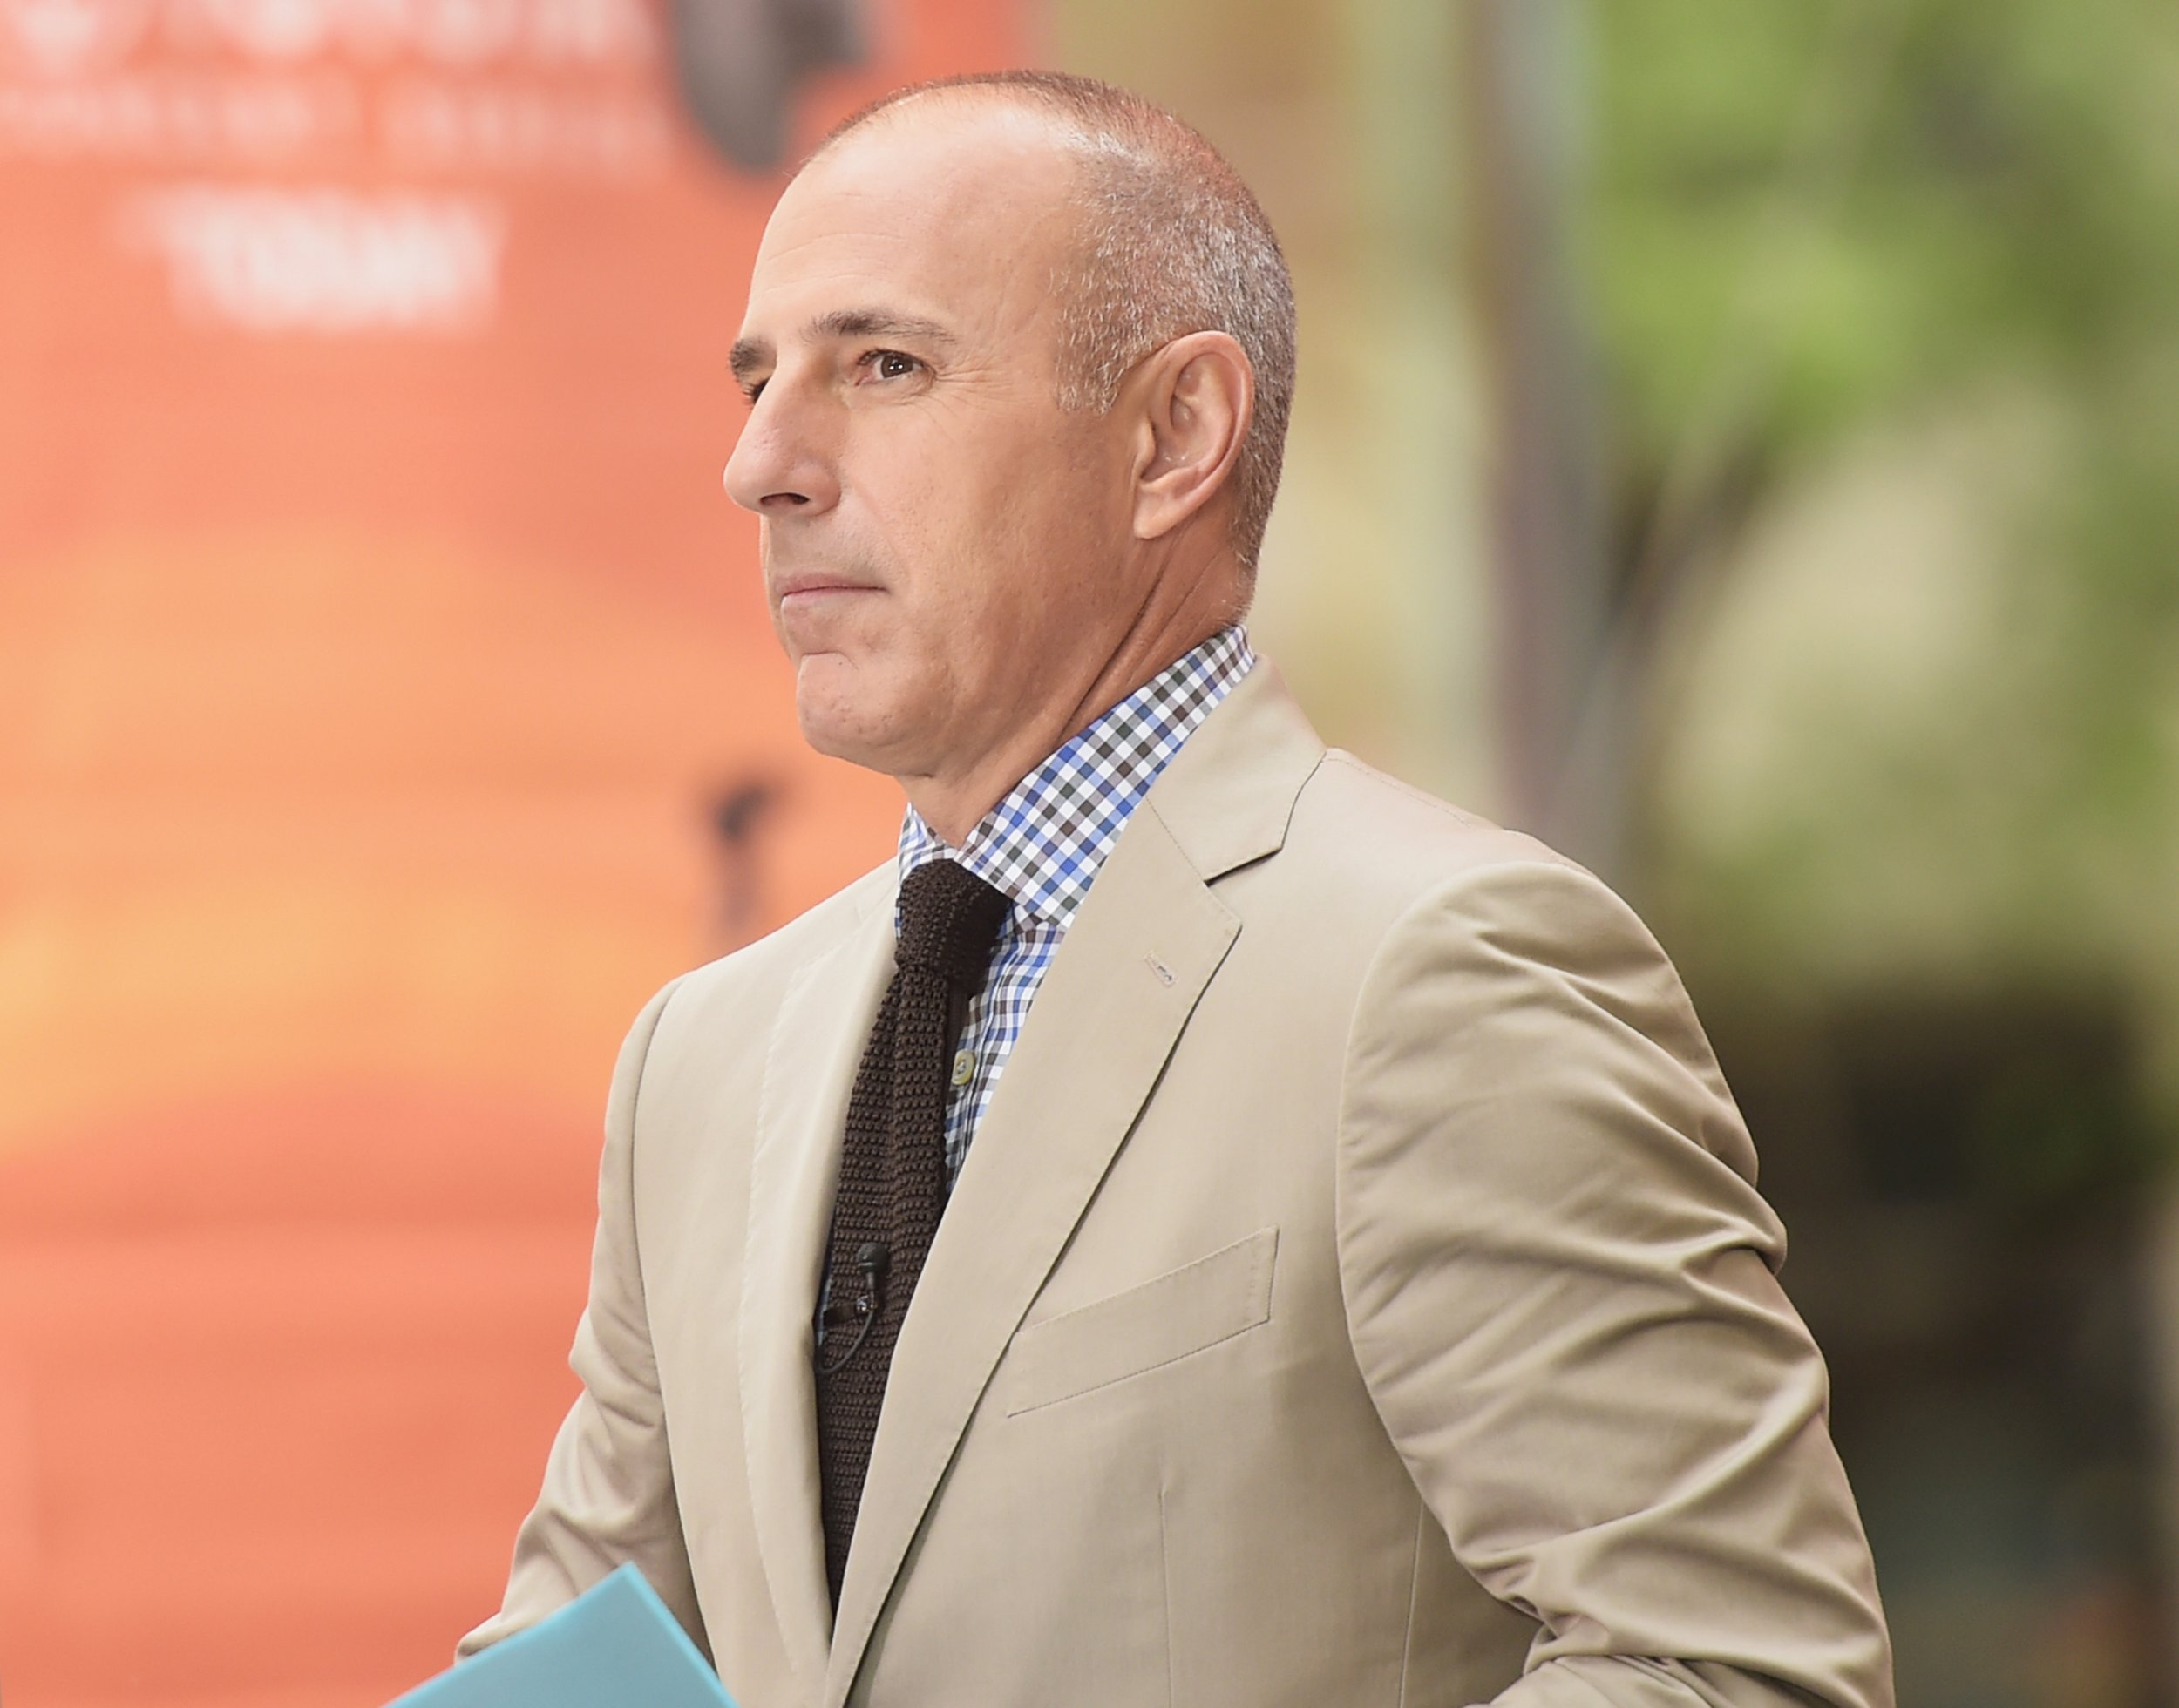 Matt Lauer statement on NBC firing